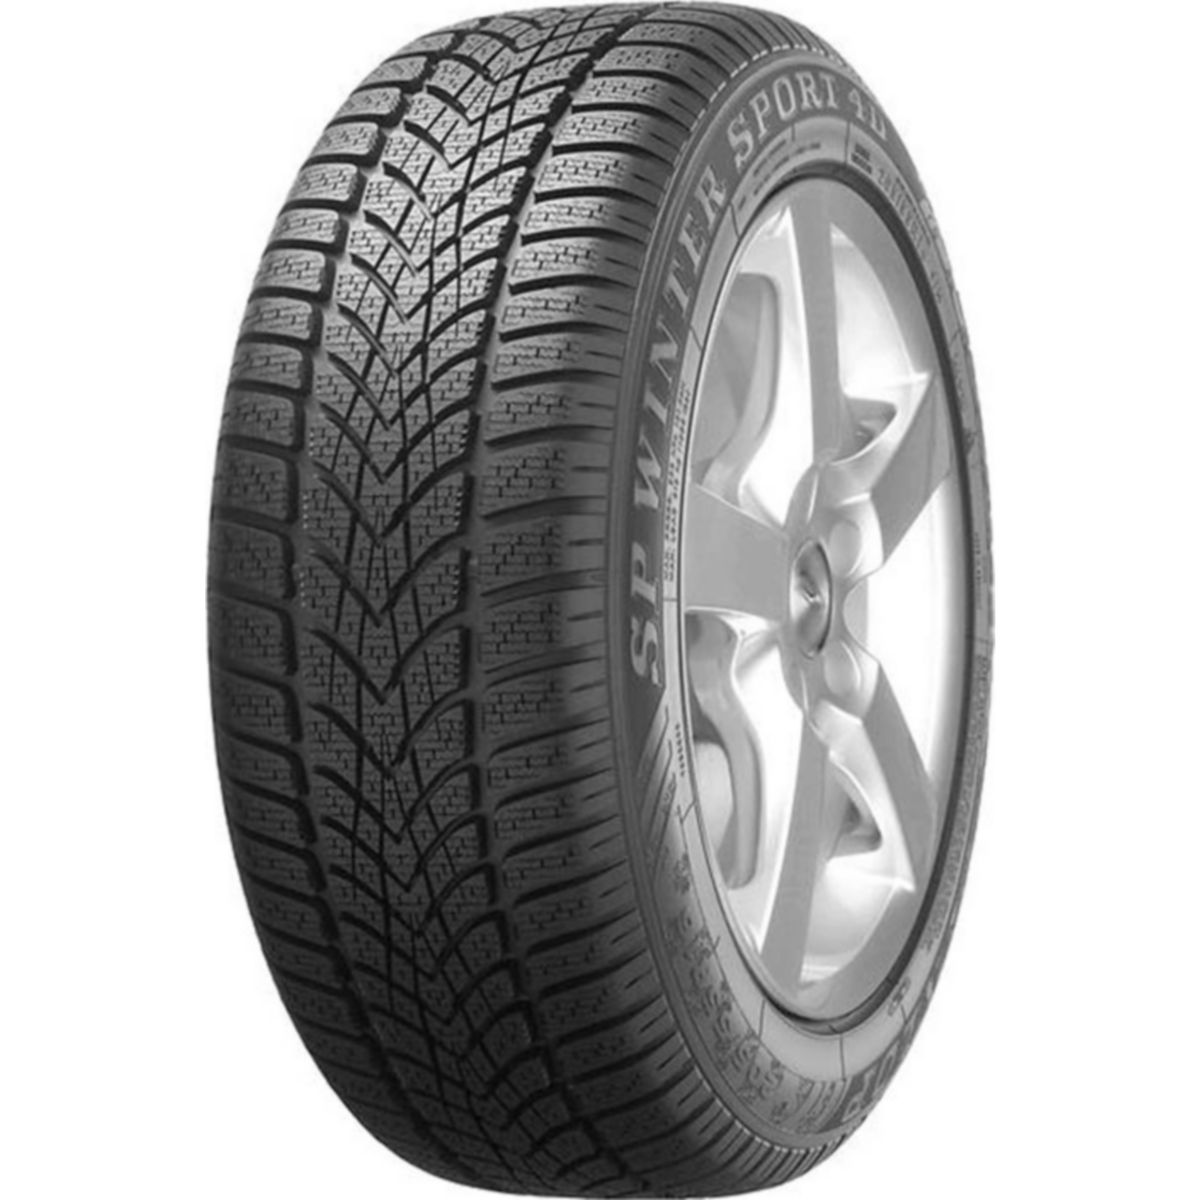 DUNLOP SP WINTER SPORT 4D 225/55R17 101H TL Winterreifen